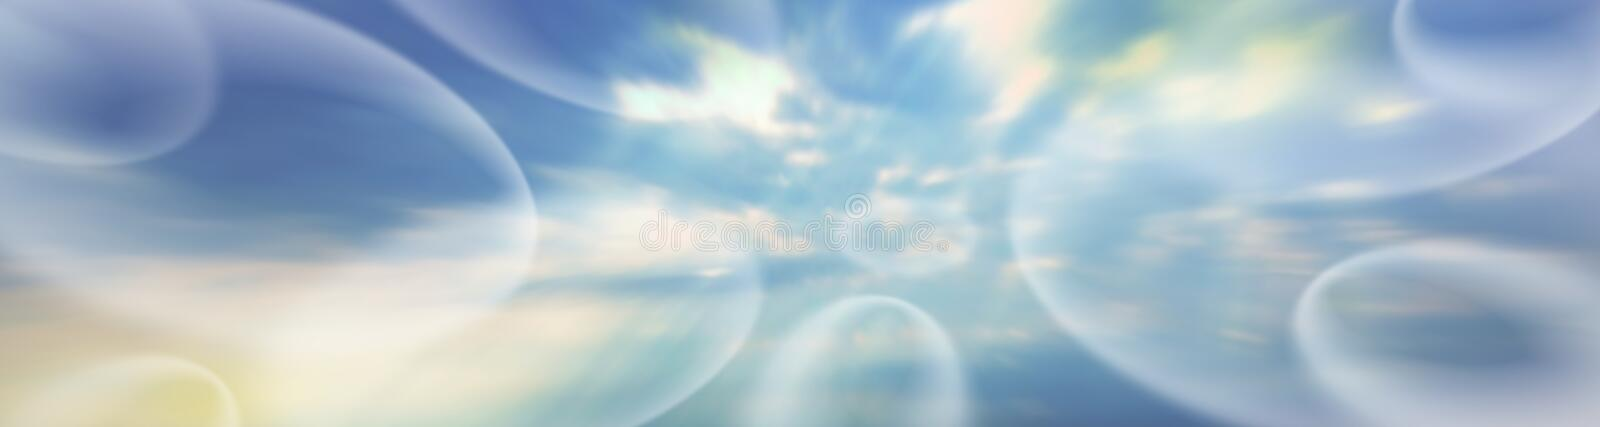 Ethereal Banner # 4 royalty free illustration